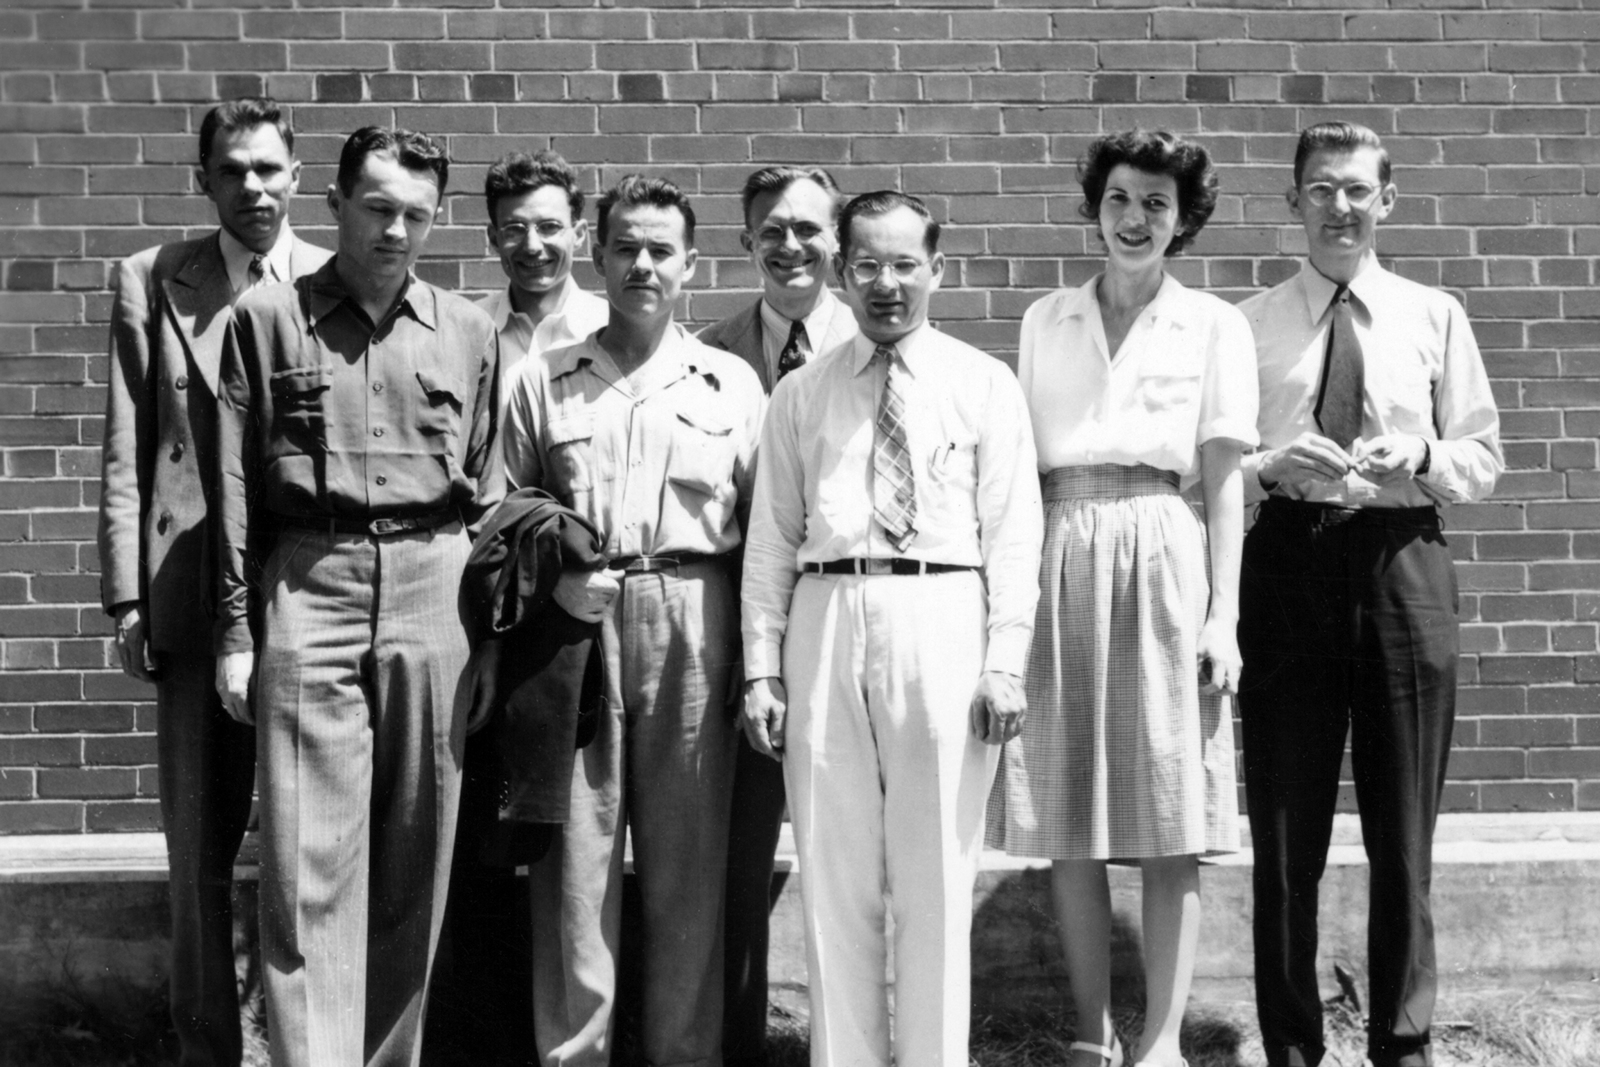 UCLA group in Chicago, Illinois. Glenn Seaborg (far left), taken July 25, 1944. Principal Investigator/Project: Analog Conversion Project